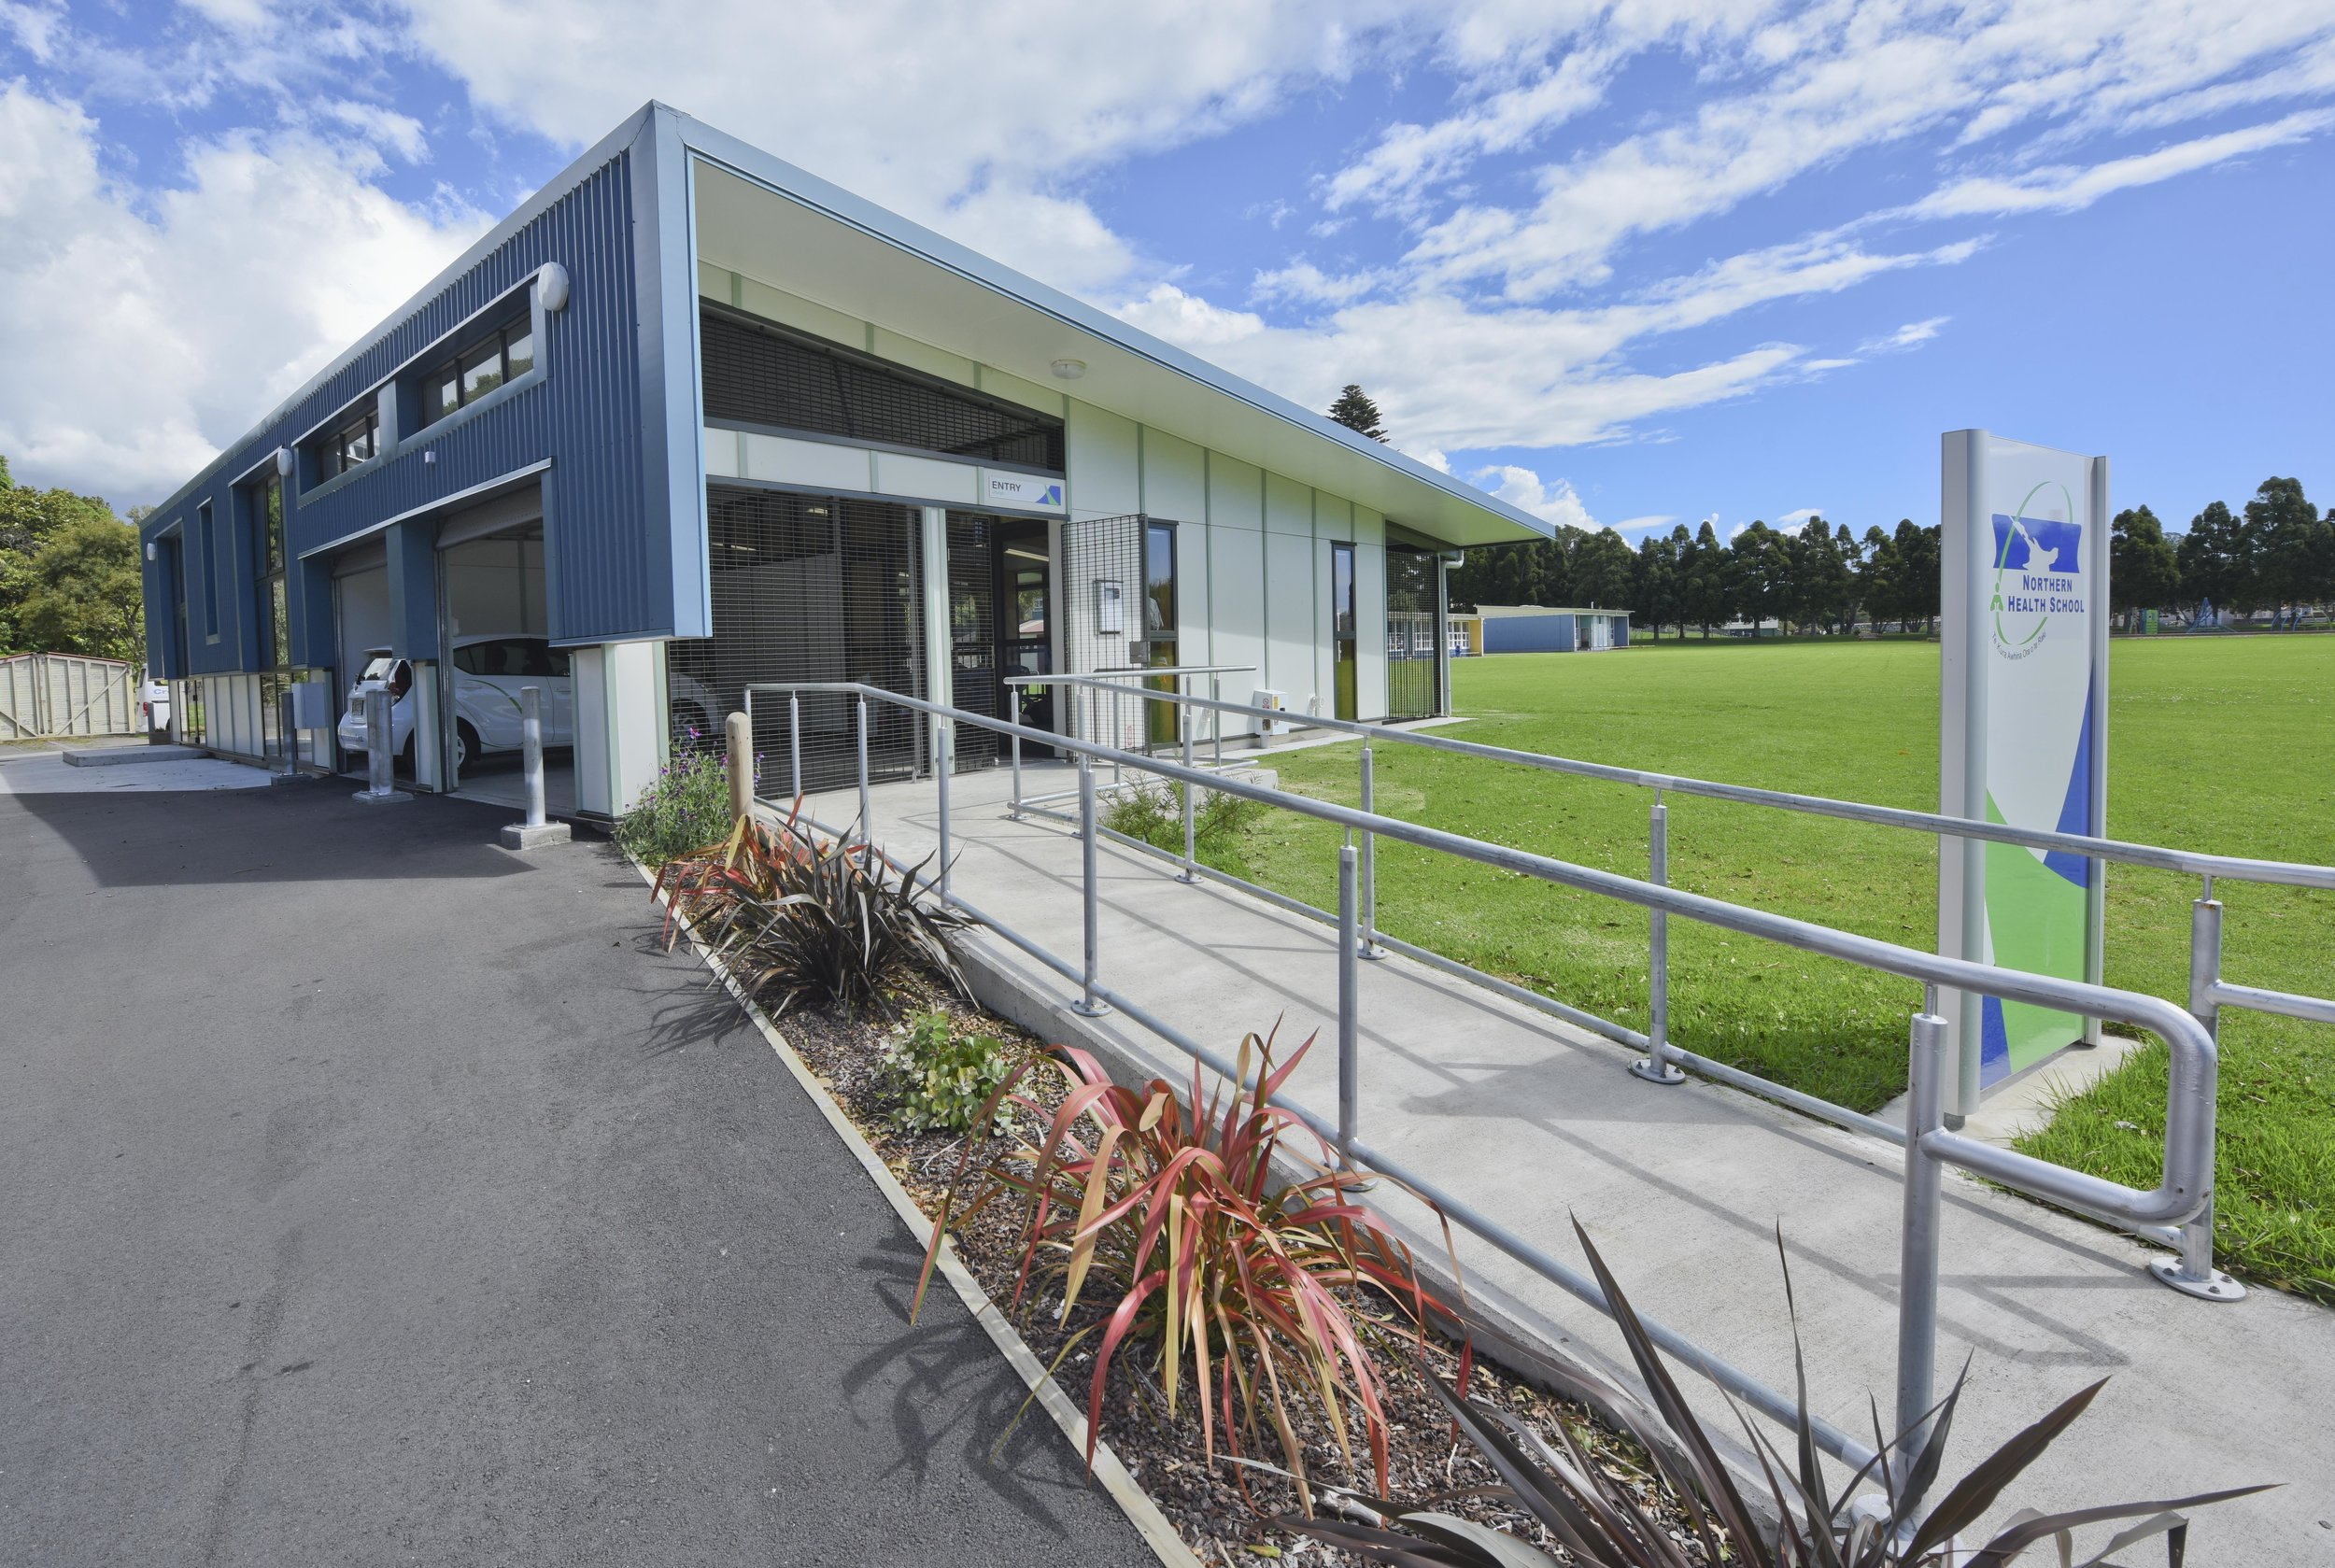 Northern Health School Devon Intermediate,   Taranaki   The Northern Health School, with units located throughout the North Island, provides community, in-home and hospital based teaching to students who are too unwell to attend regular school.